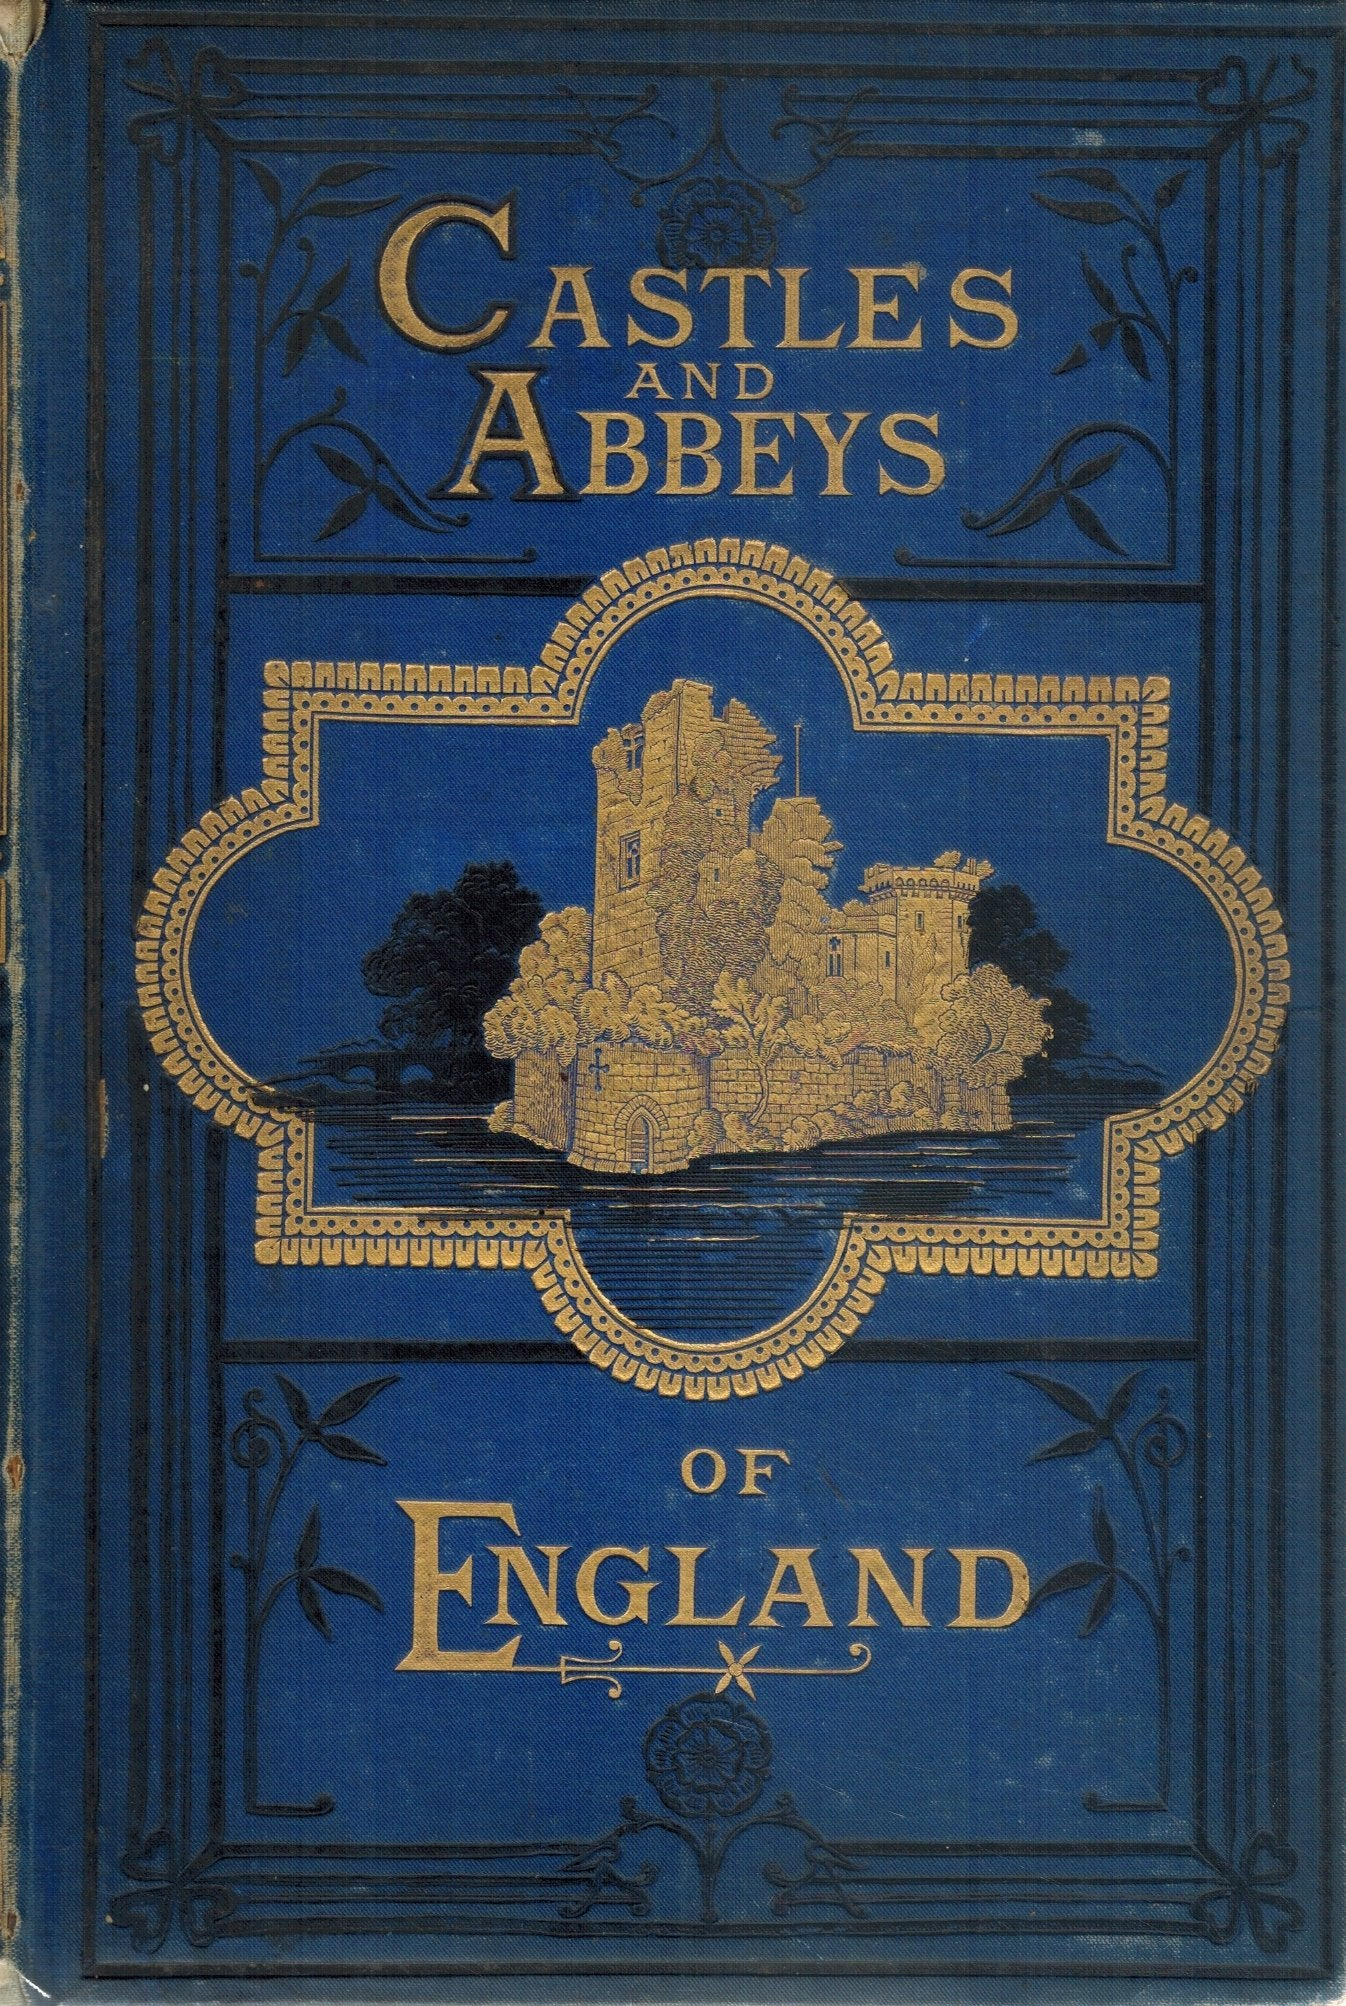 THE CASTLES AND ABBEYS OF ENGLAND  by Beattie, William